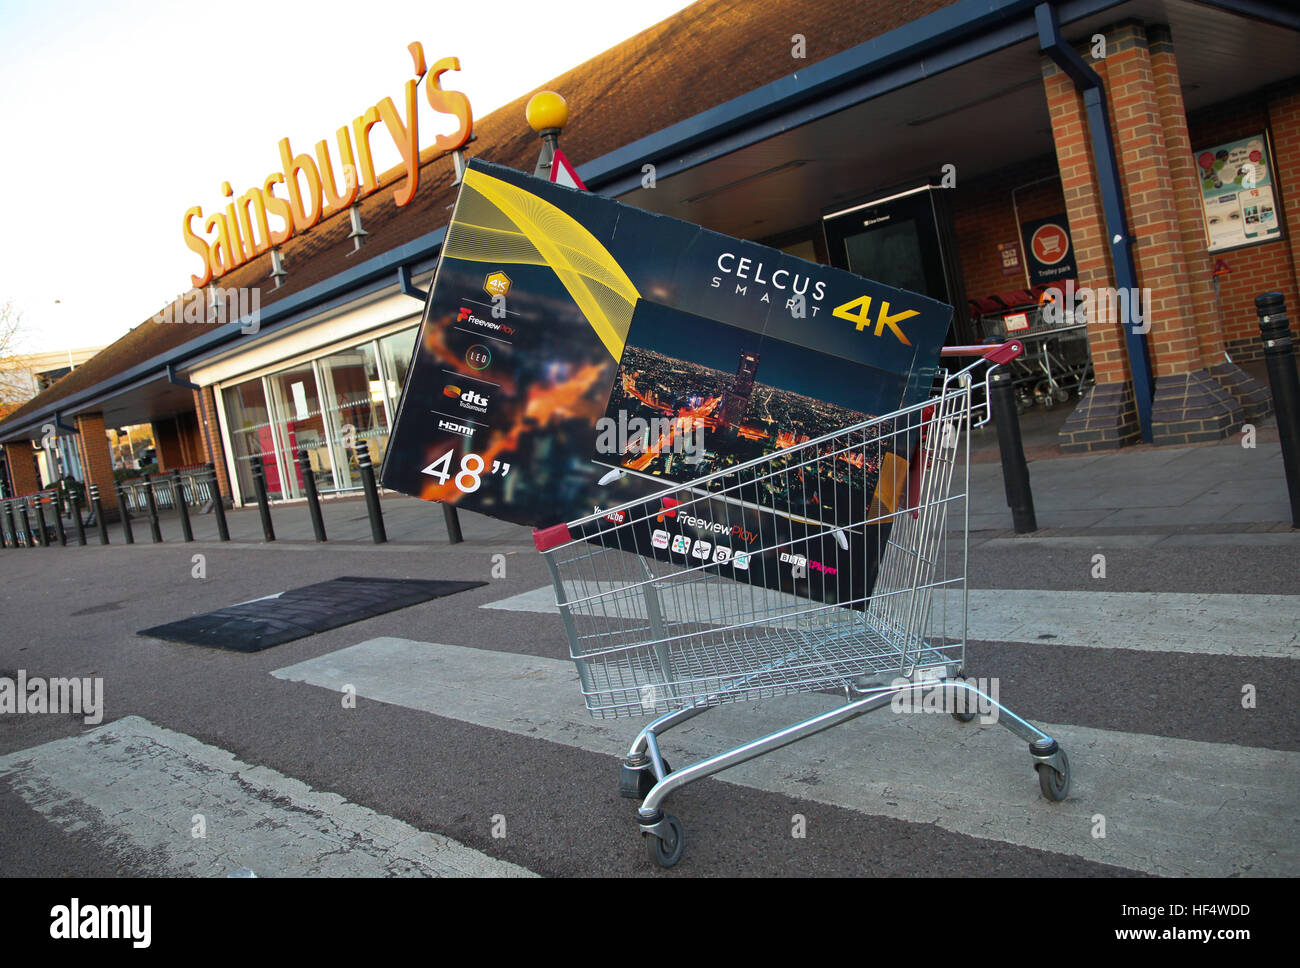 Sainsburys Black Friday High Resolution Stock Photography And Images Alamy